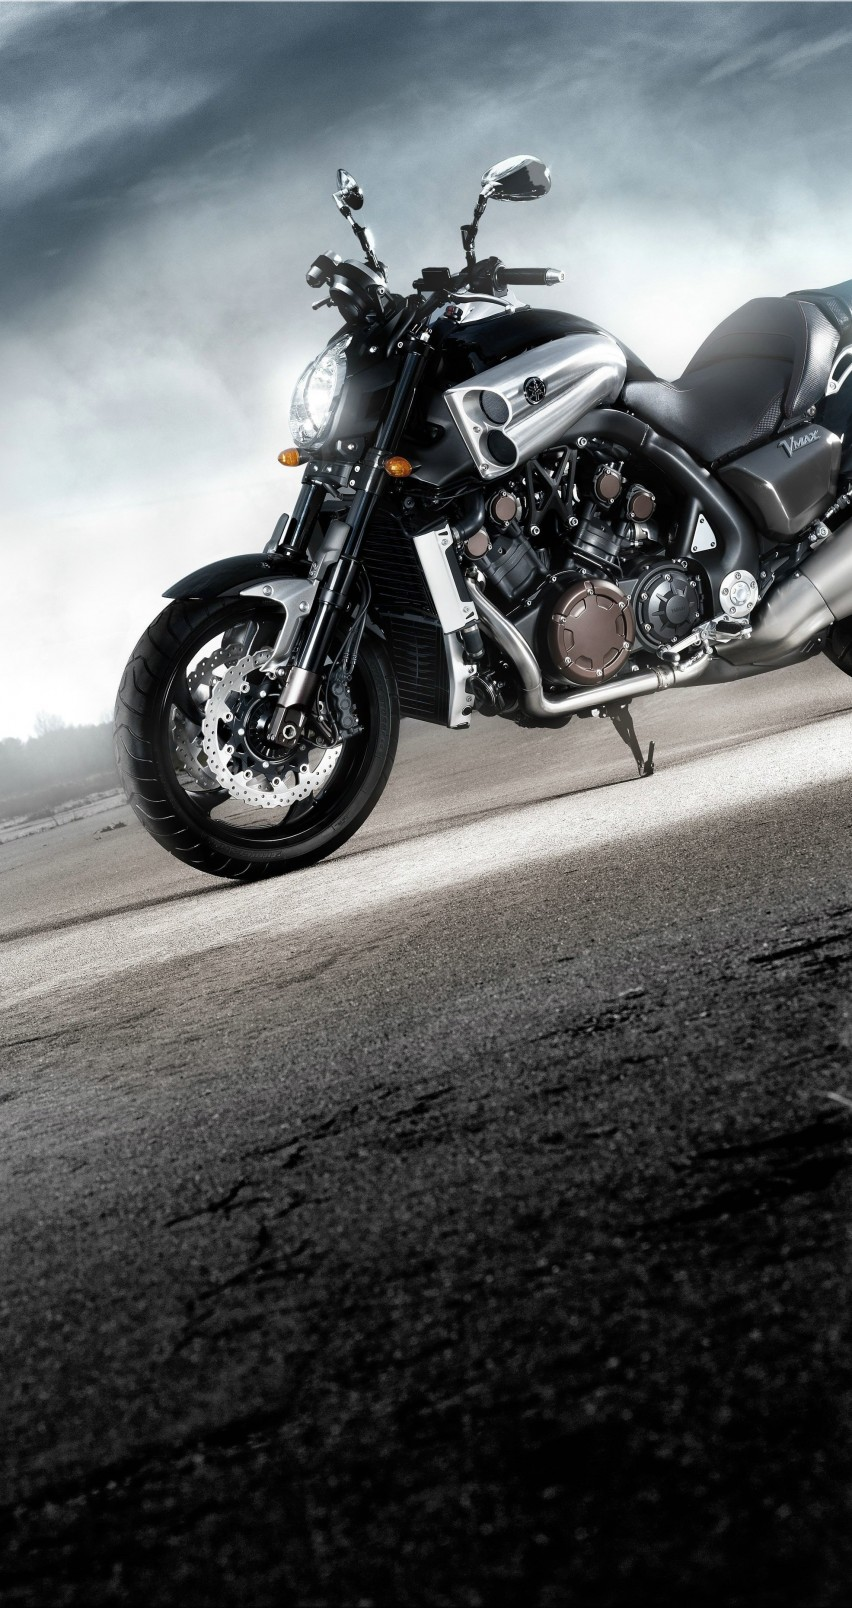 Yamaha VMax Wallpaper for Apple iPhone 6 / 6s